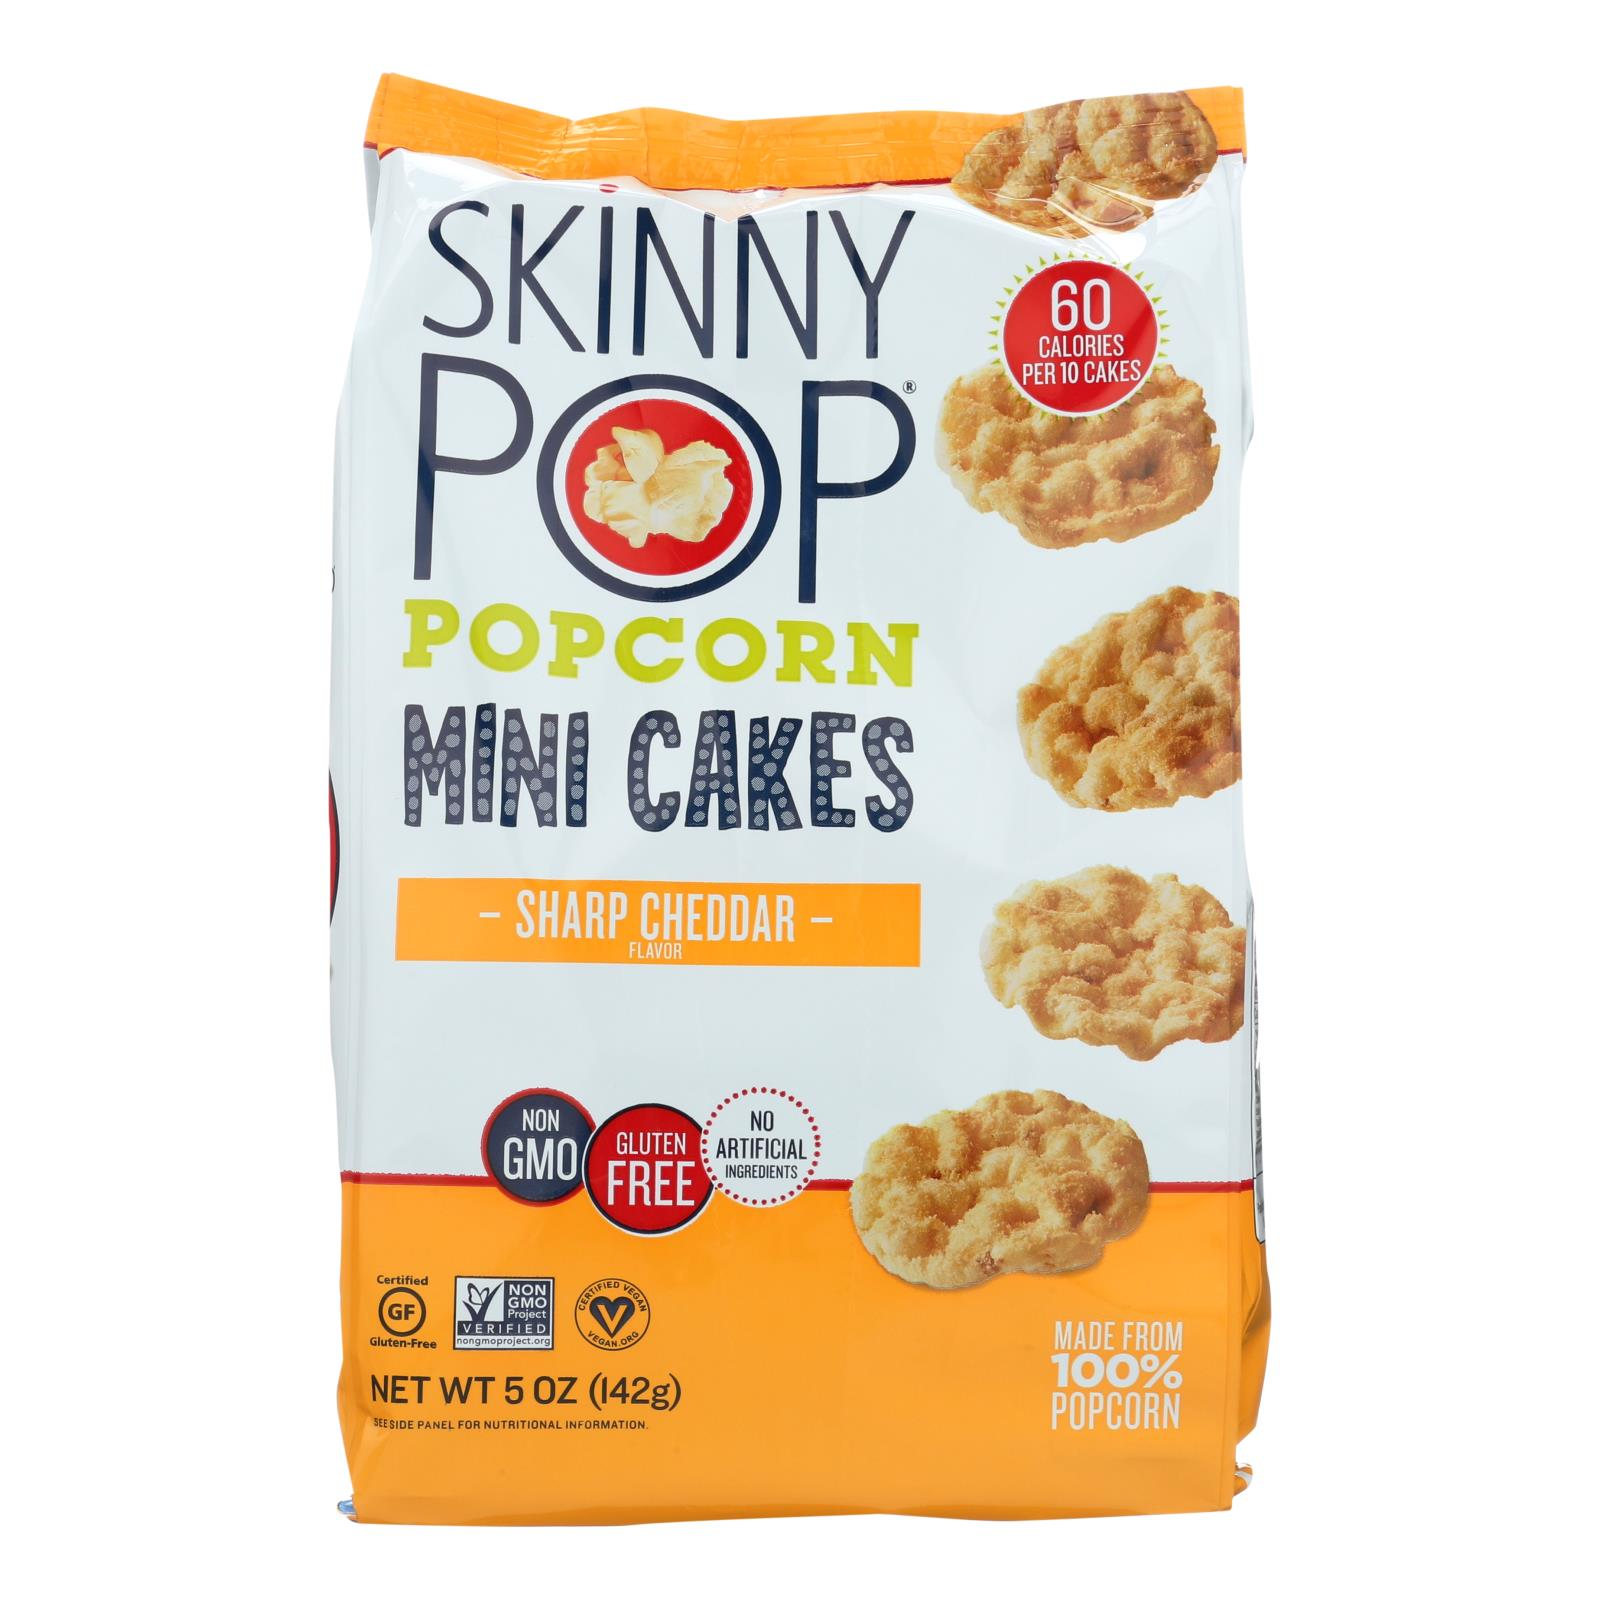 Skinnypop Mini Cheddar Popcorn Cakes  - Case of 4 - 5 OZ